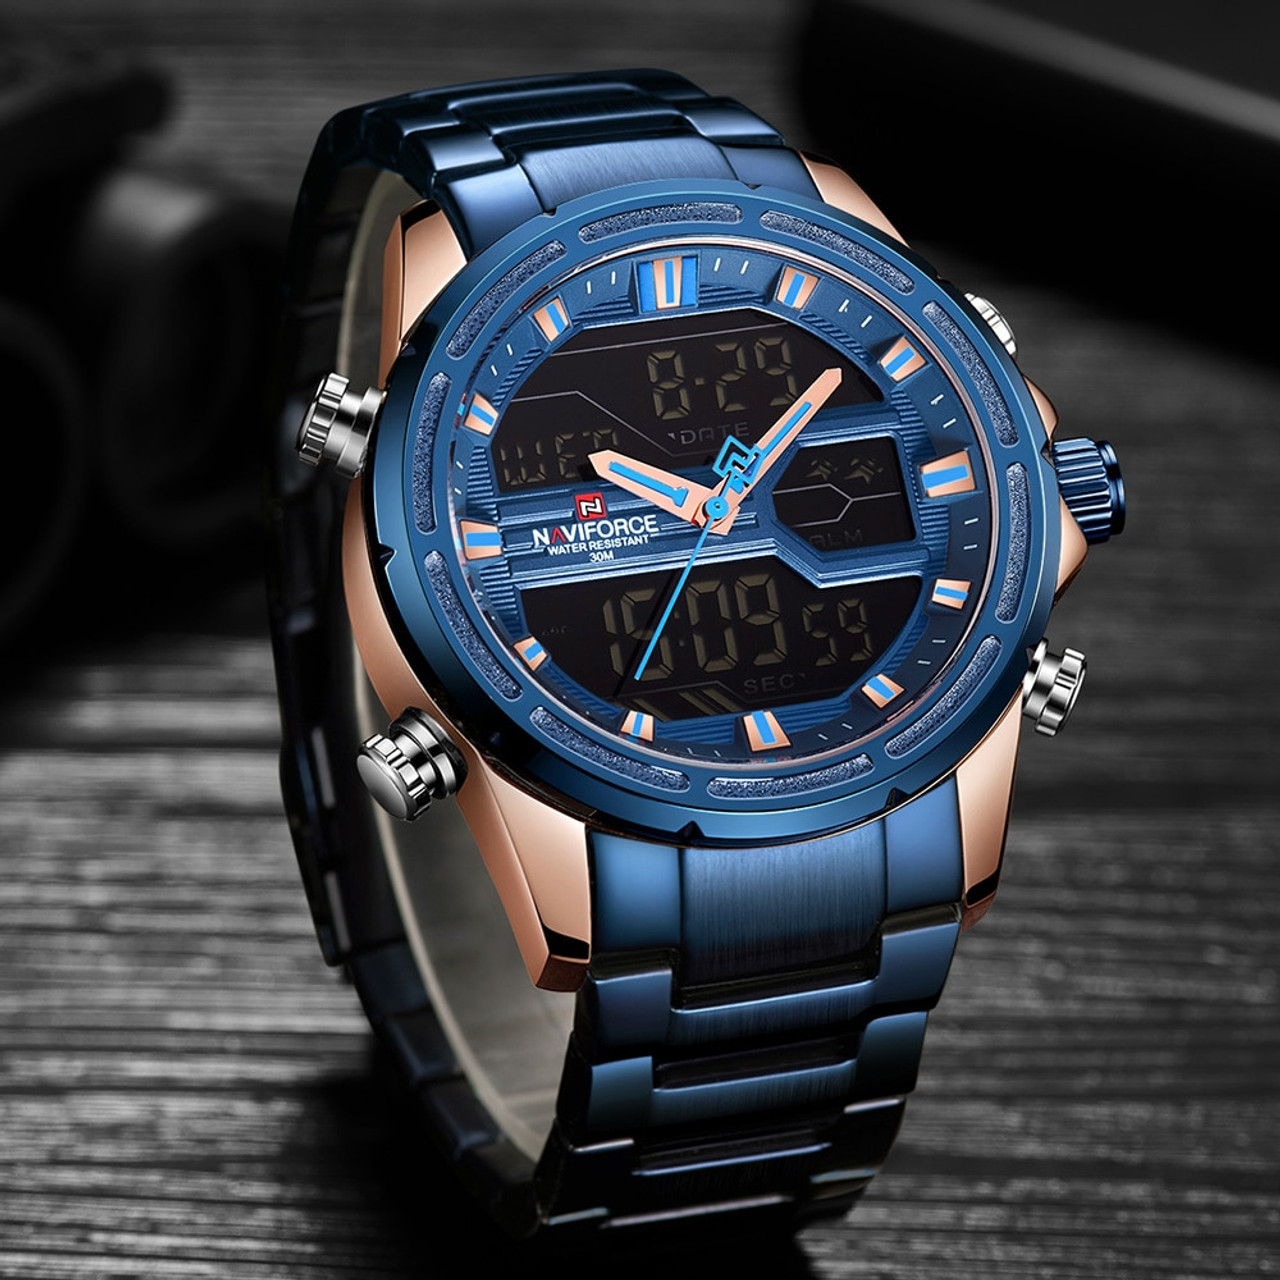 a3904194e ... Man Stainless Army Military Wrist Watch NAVIFORCE Luxury Brand Men  Watch Fashion Sports Watches Men's Waterproof ...